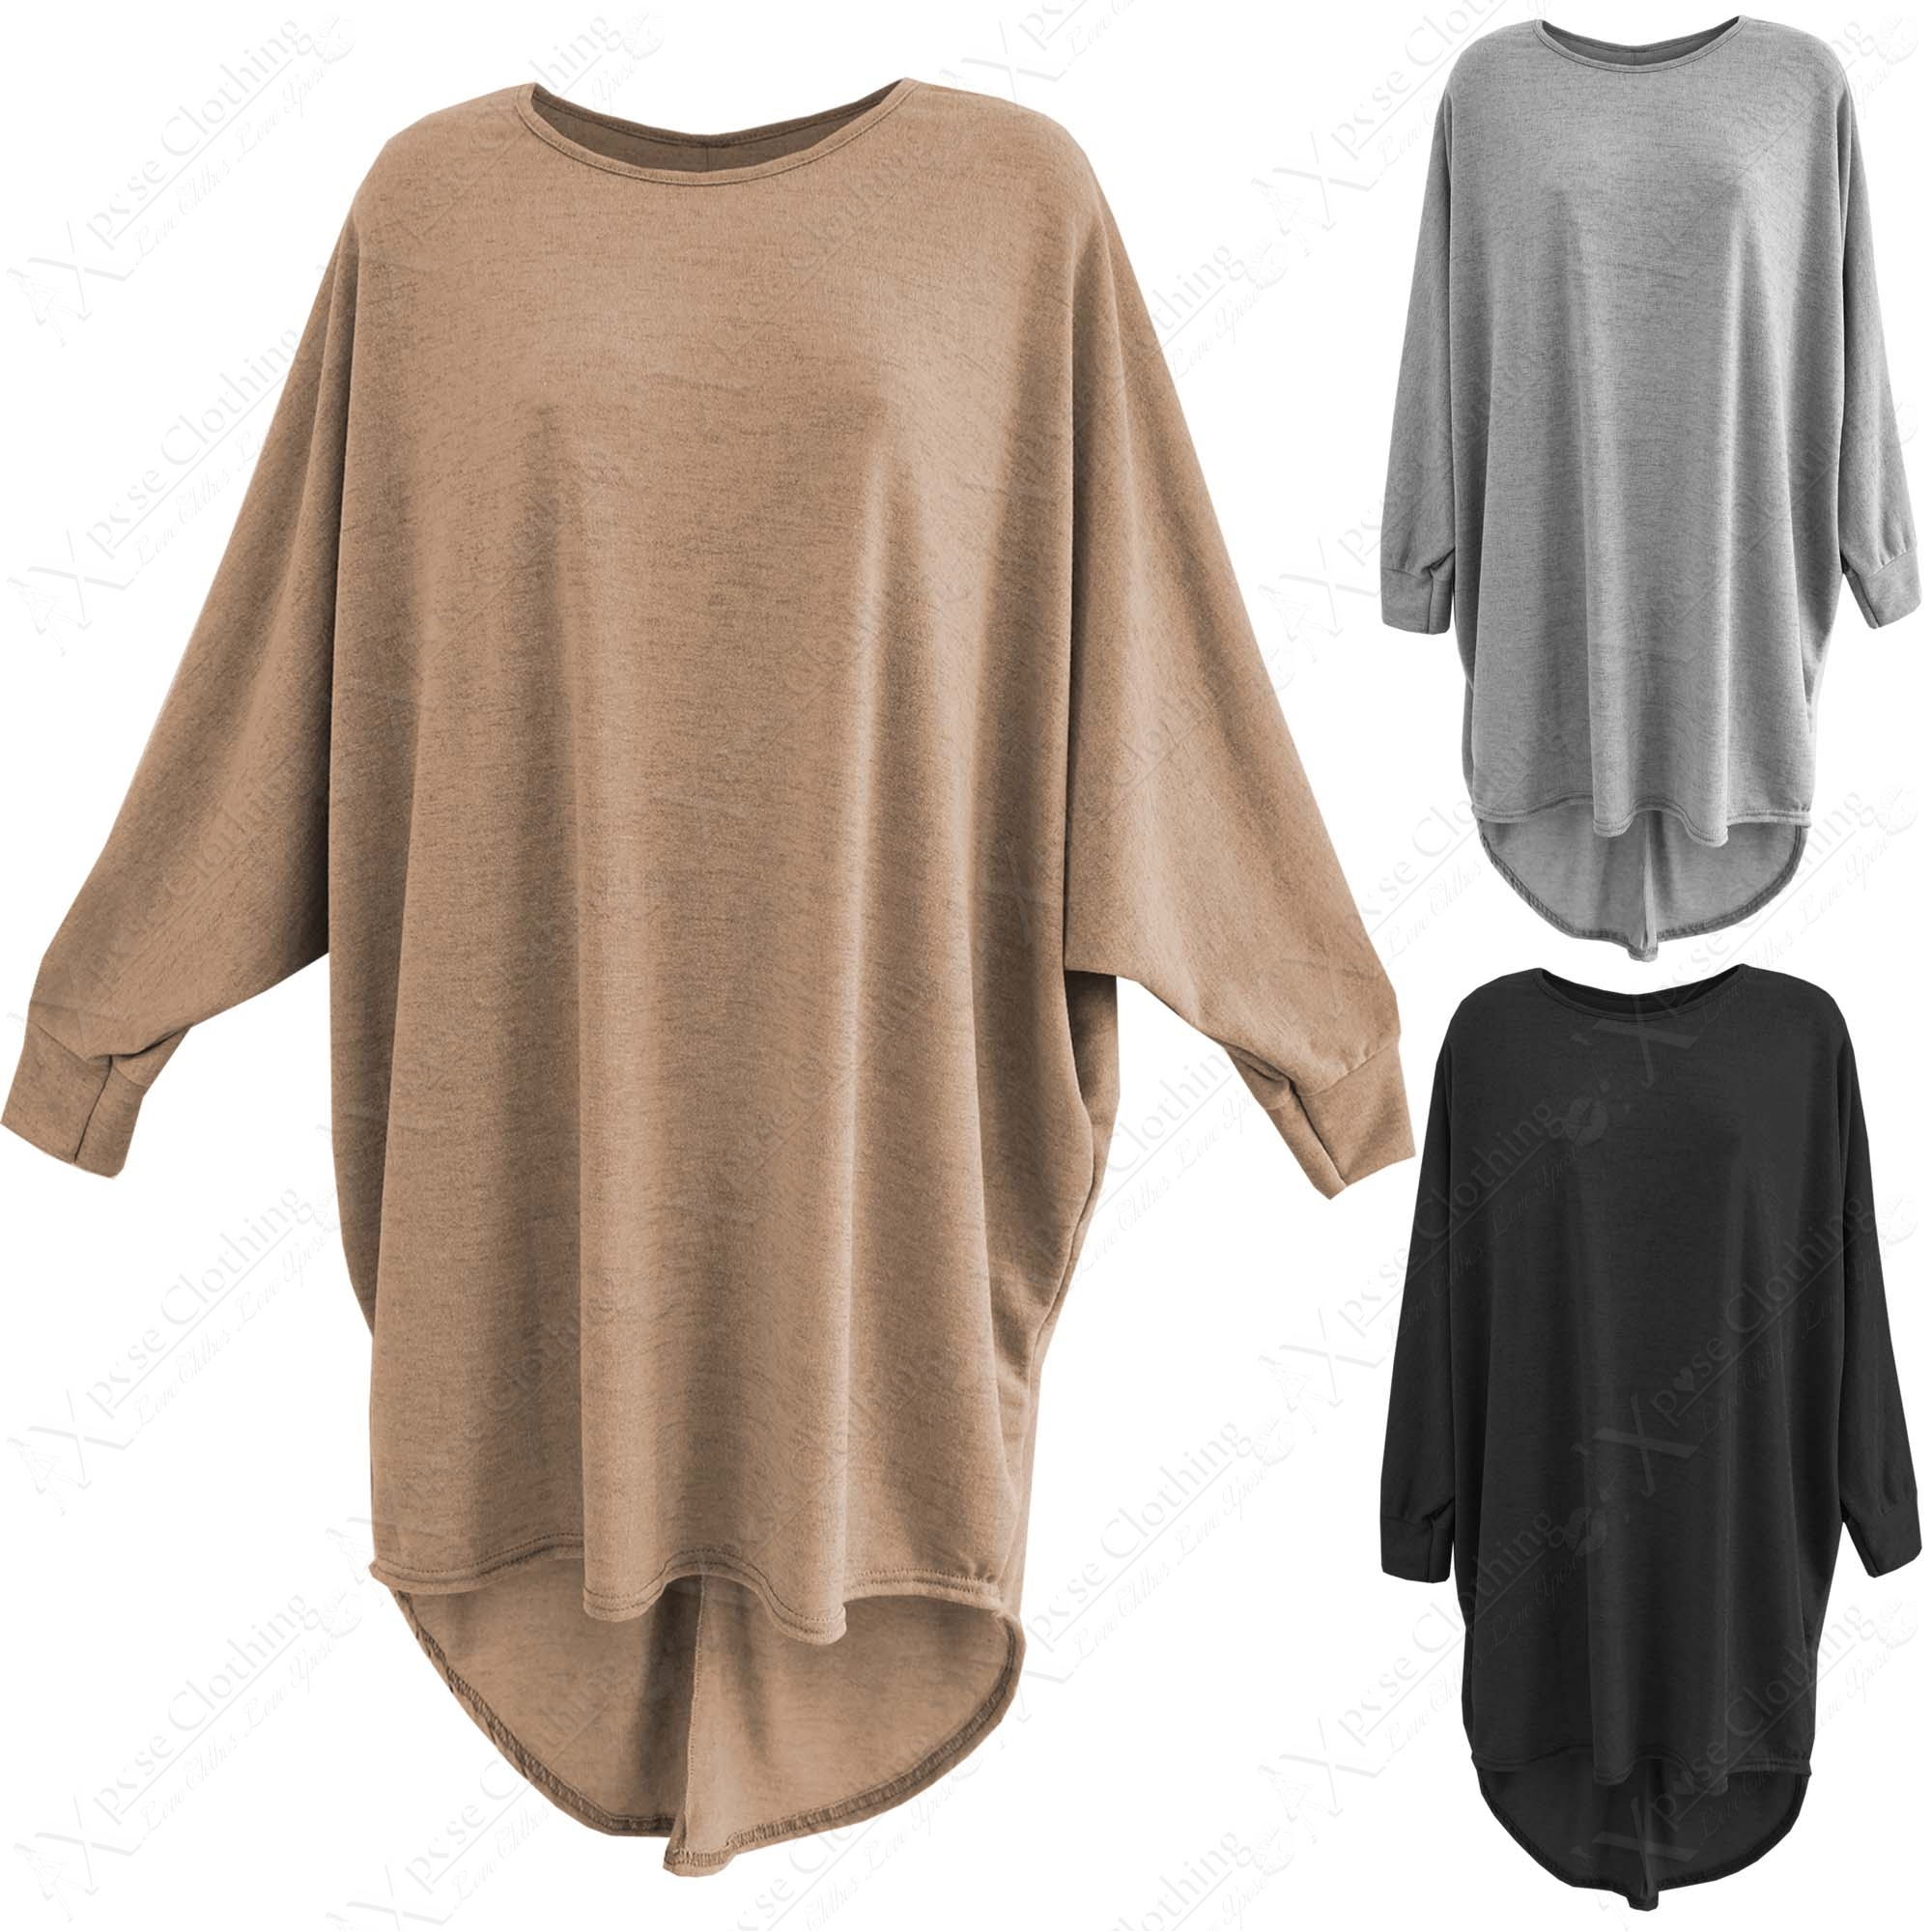 NEW LADIES LONG LOOSE FIT BATWING TOP JUMPER WOMENS KNITTED ...